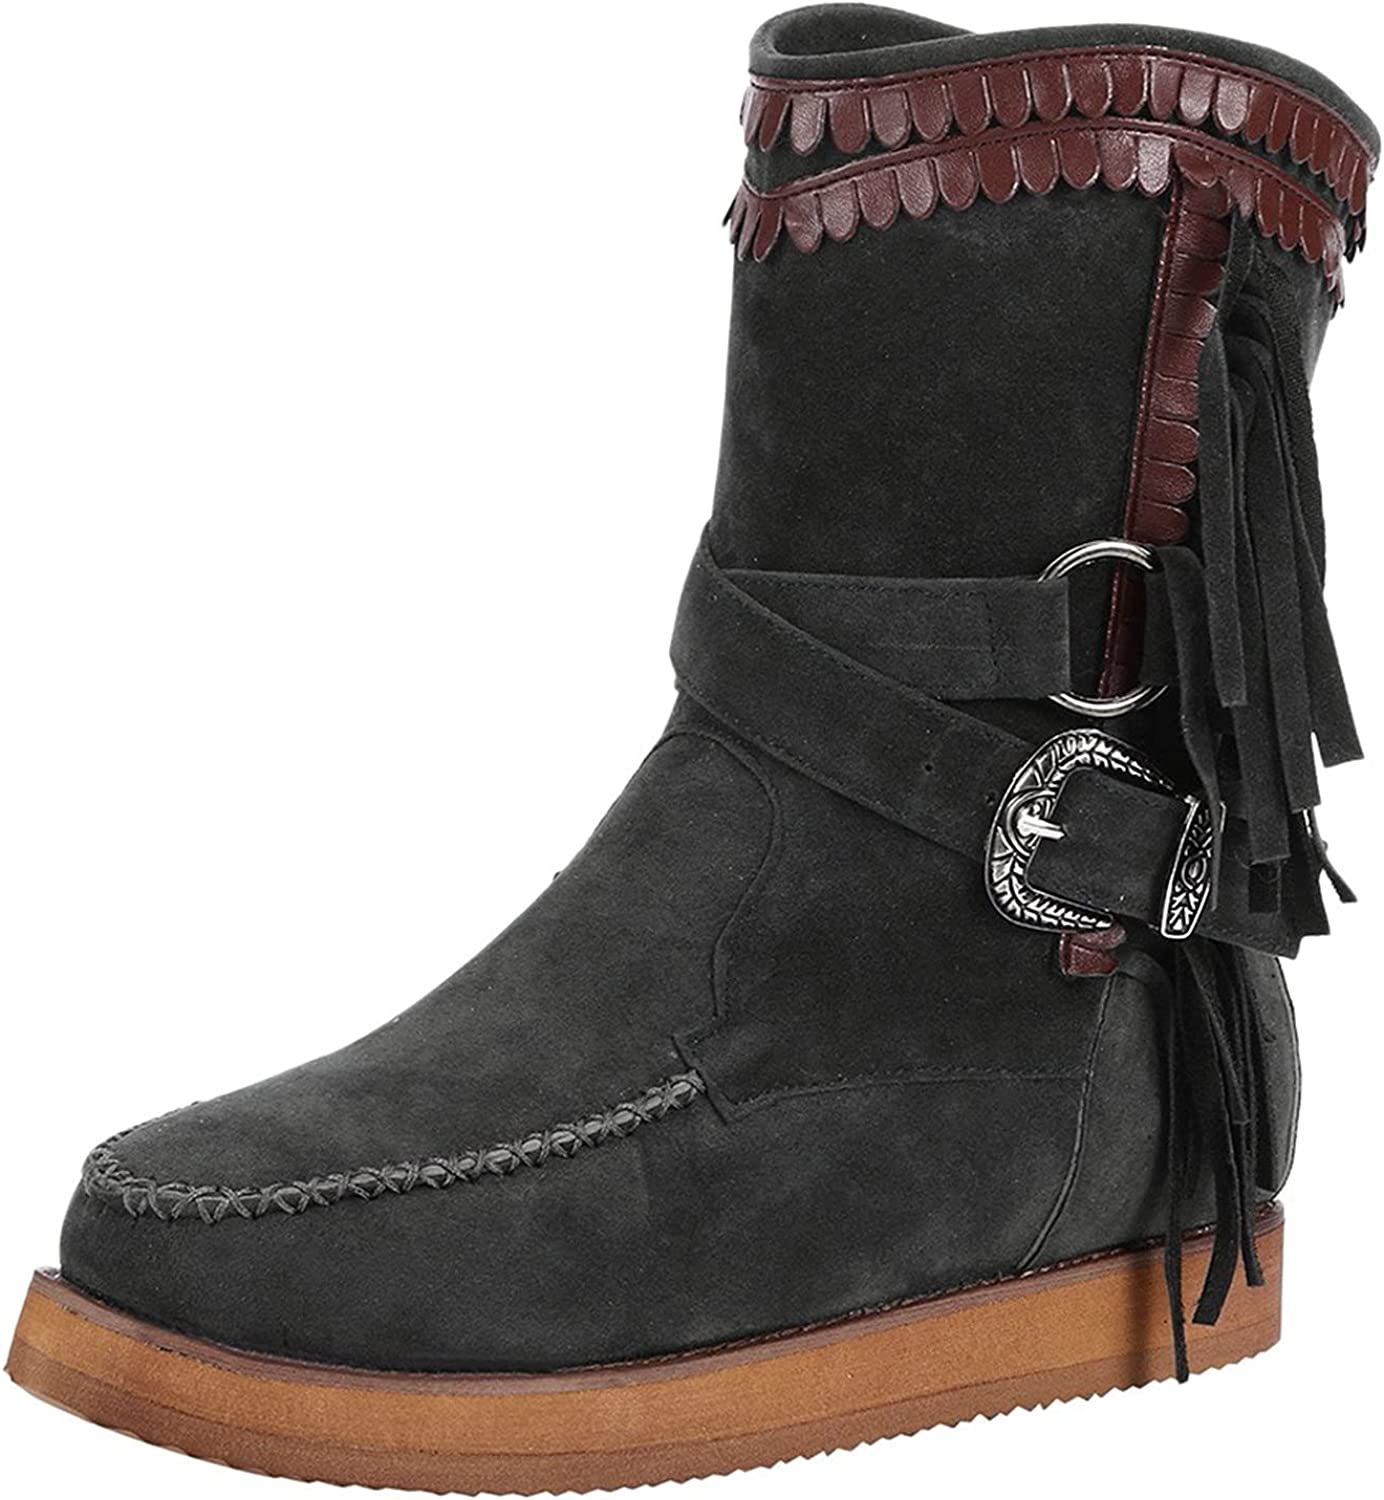 Women's Winter Mid Reservation Calf Boots Retro Low Cross Toe Pointed Straps Popularity